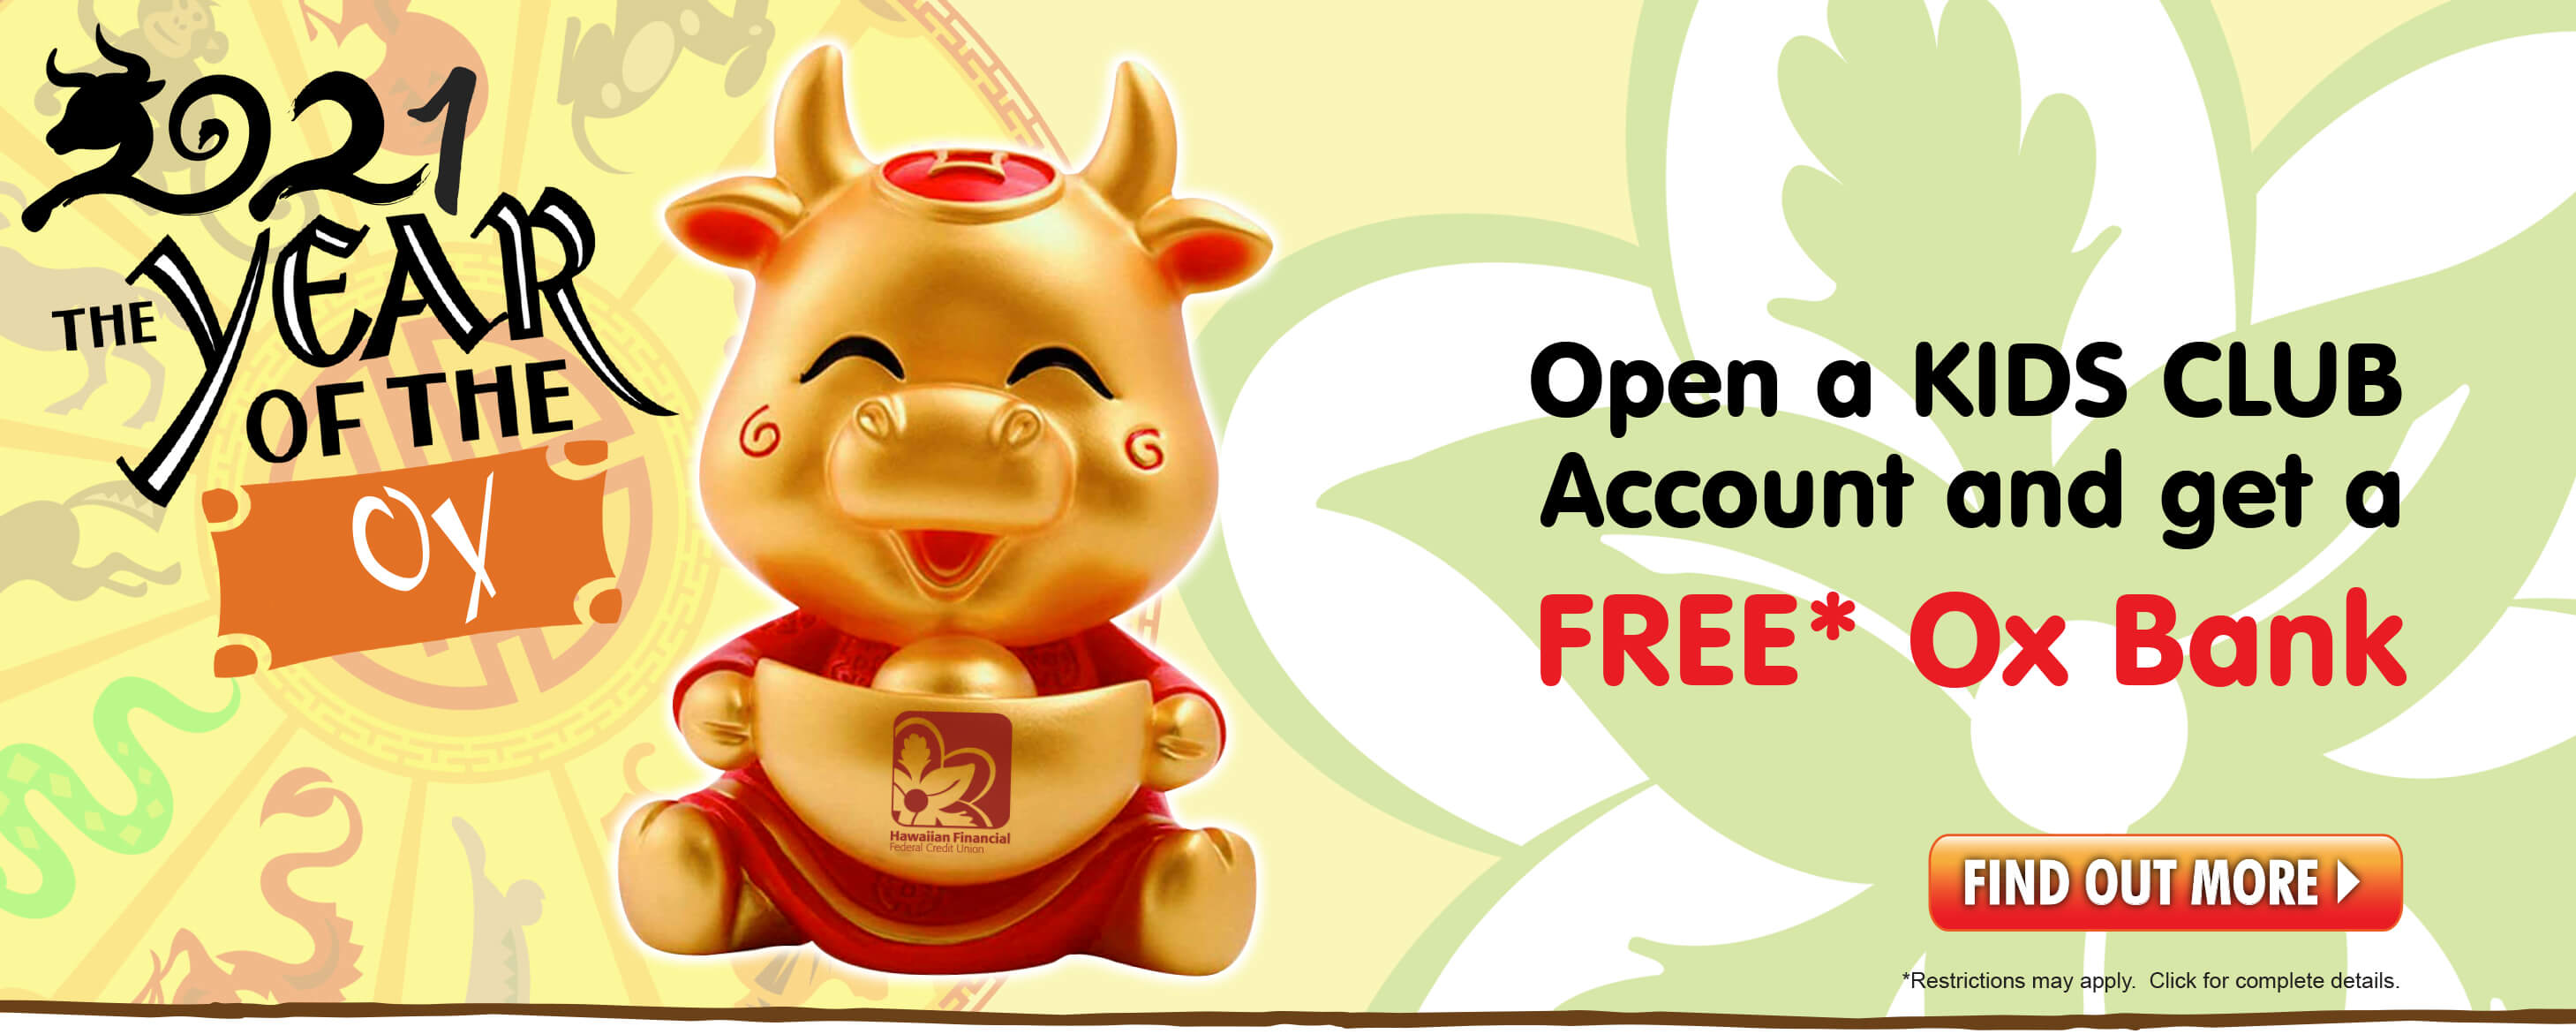 Get a free Year of the Ox bank when you open a Kids Club account with $100.  Click for complete details!